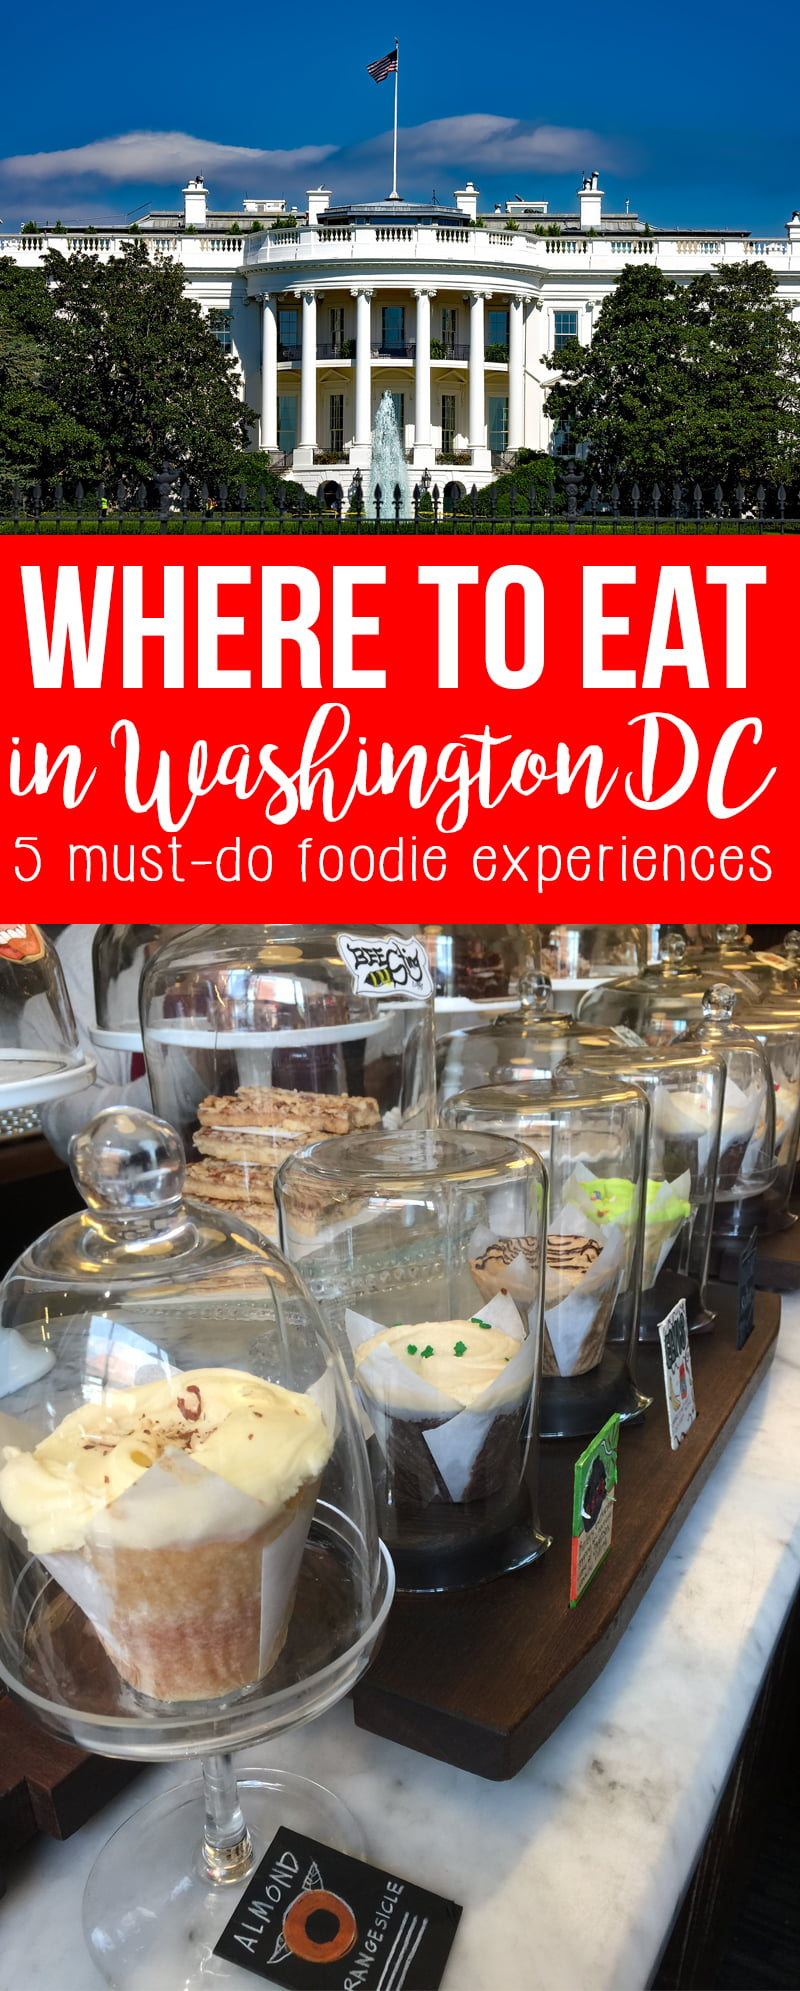 Where to eat in Washington DC | 5 must-do foodie experiences